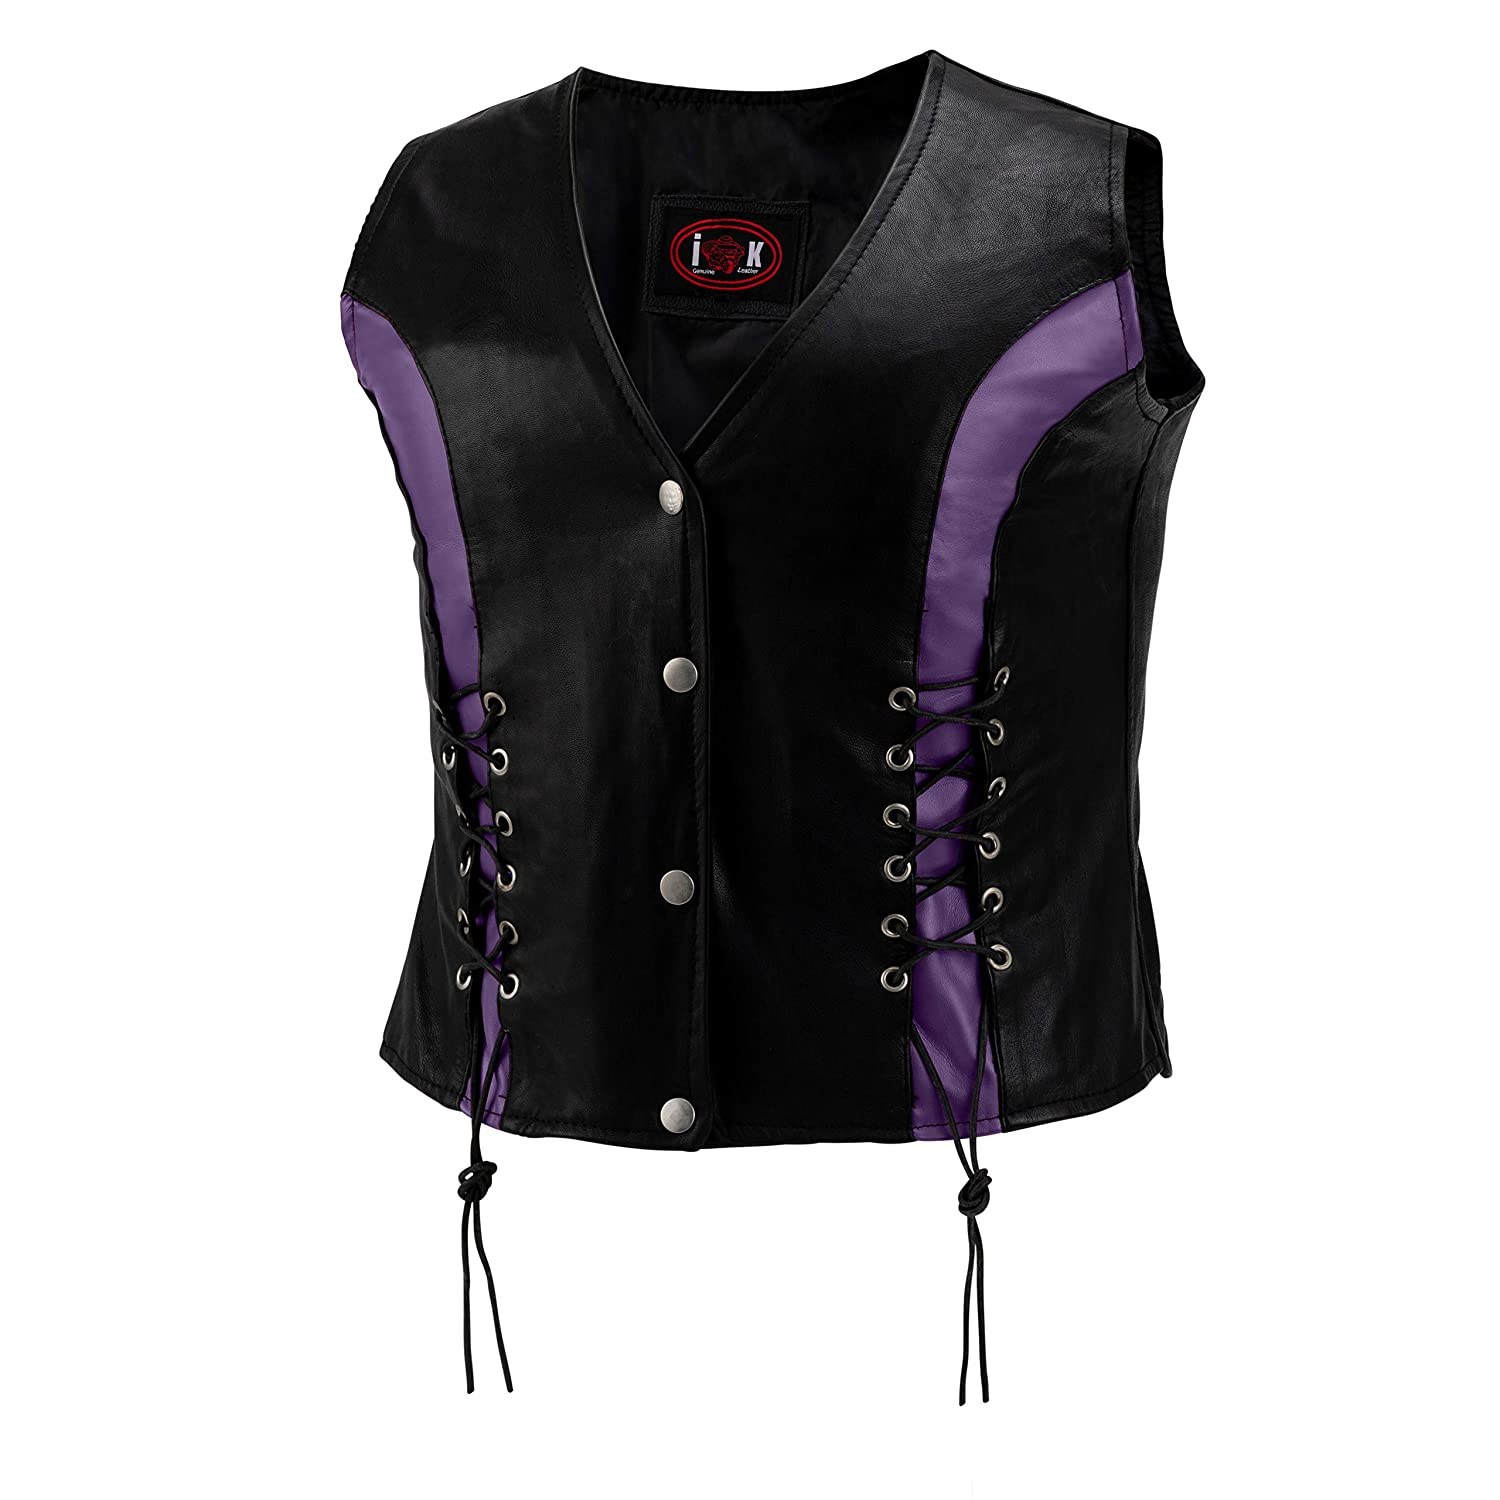 4X The Nekid Cow Purple Accents- Satin Lined Womens Premium Genuine Leather Motorcycle Ladies Lightweight Bikers Riding Vest with Front Lacing